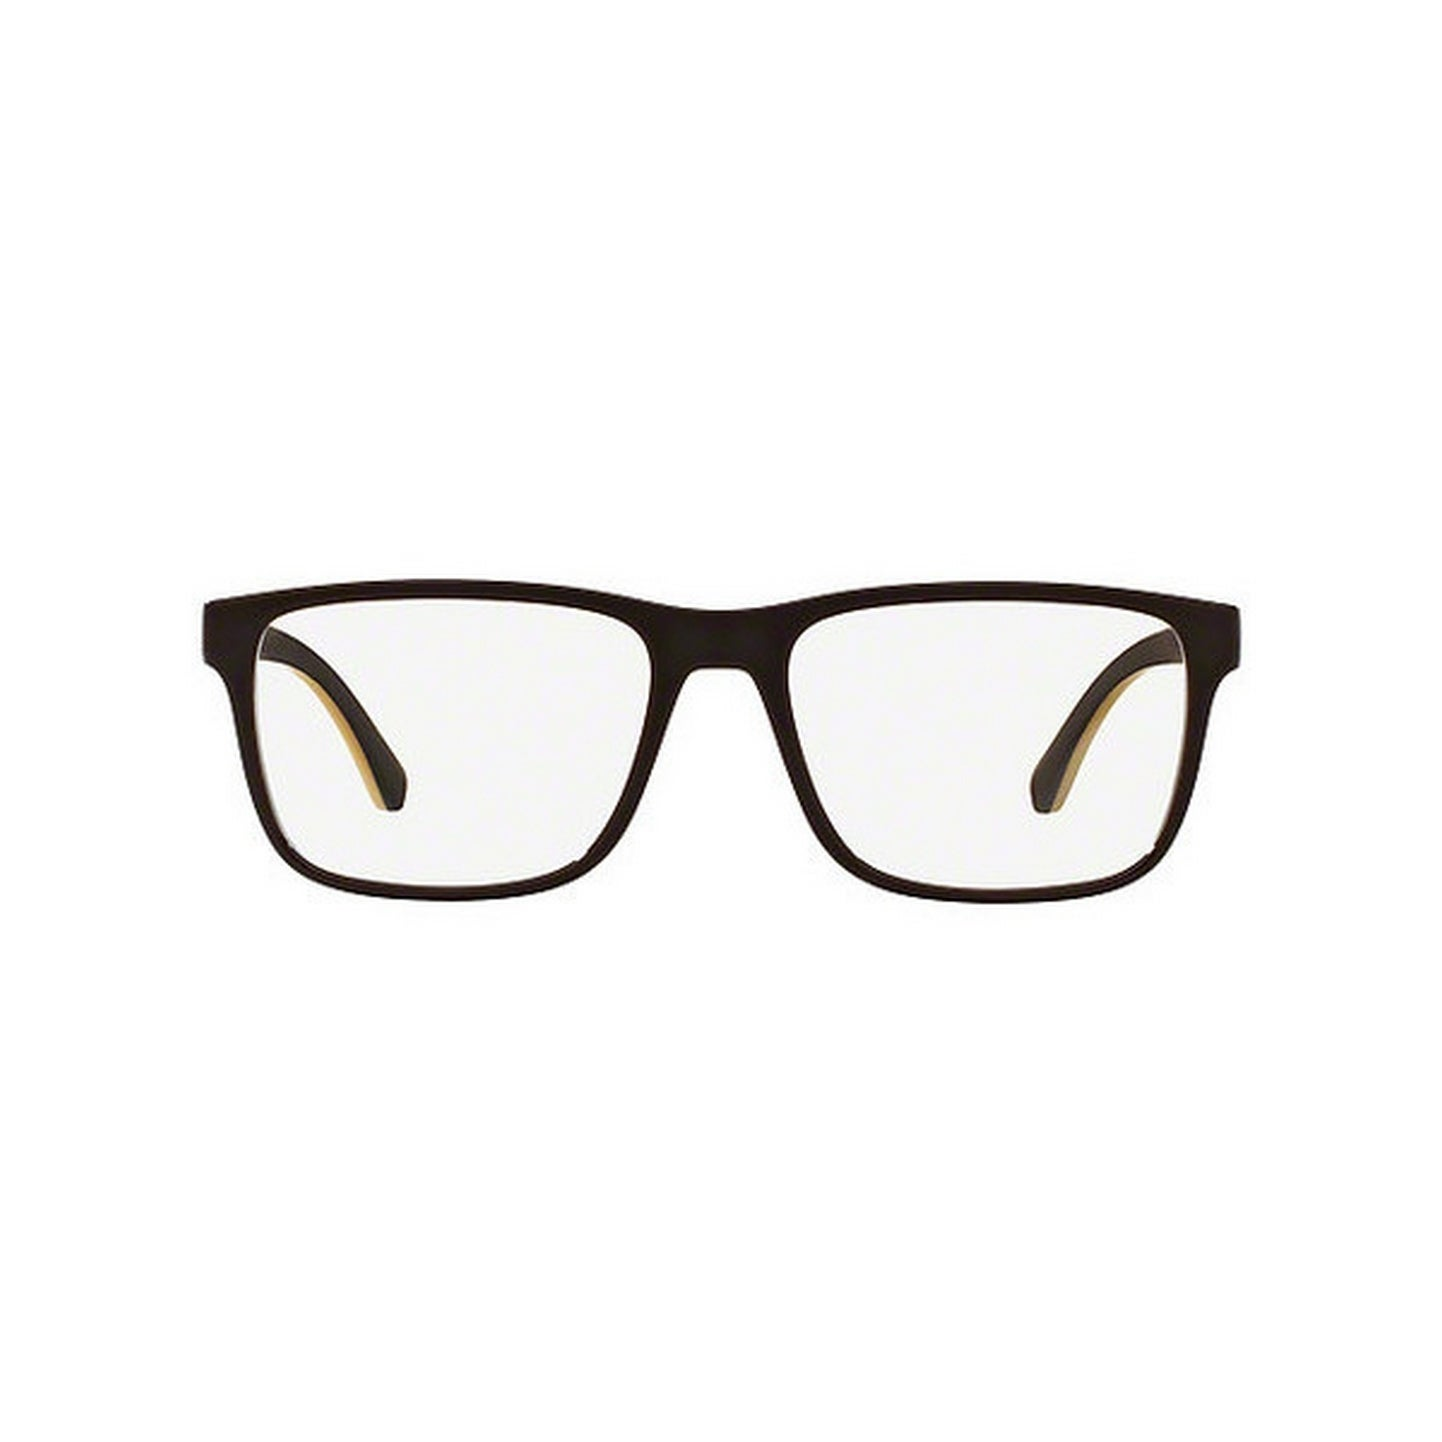 5d5c2d9285c Shop Emporio Armani Men s EA3103 5562 53 Rectangle Plastic Brown Clear  Eyeglasses - Free Shipping Today - Overstock.com - 14778931